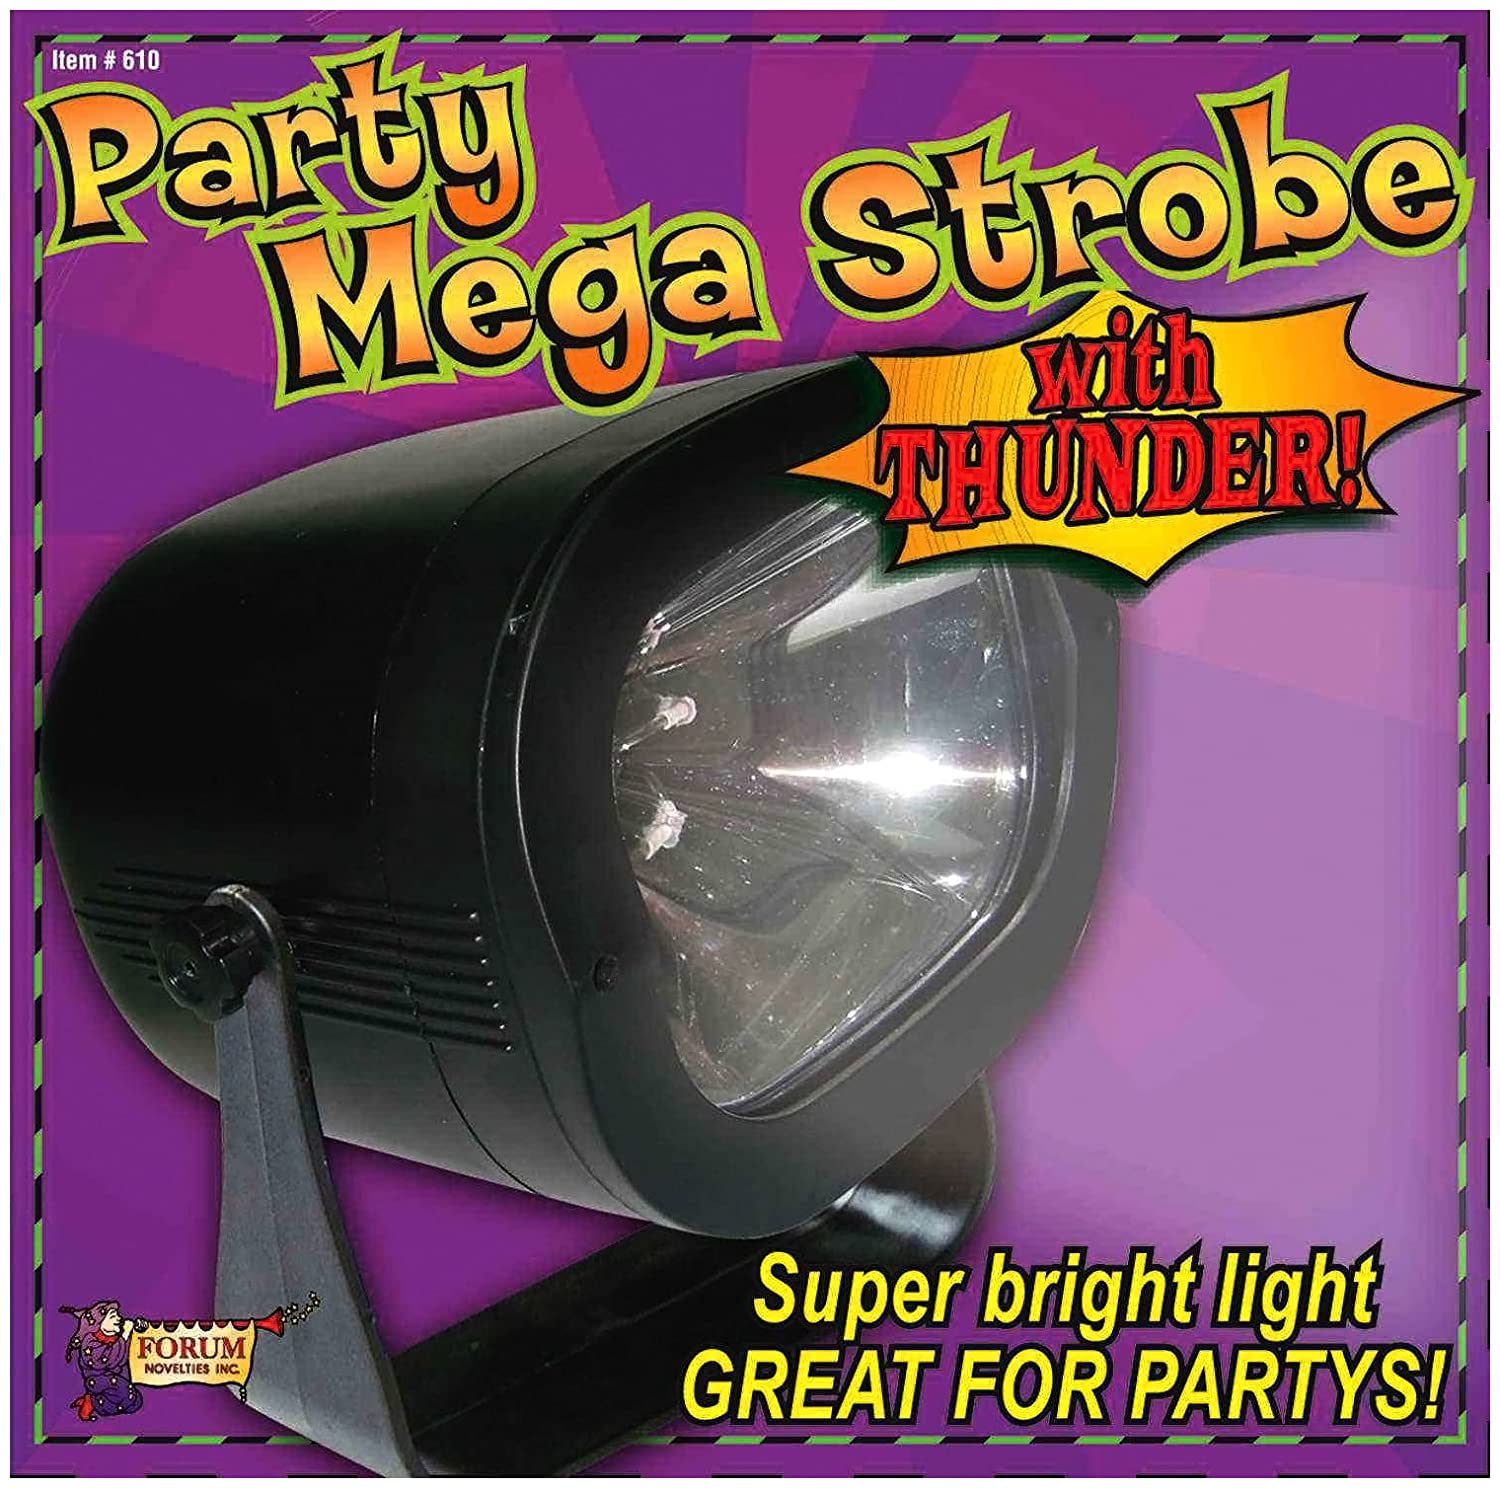 Forum Novelties Mega Strobe Super helle Party mit Thunder Sound Effekte